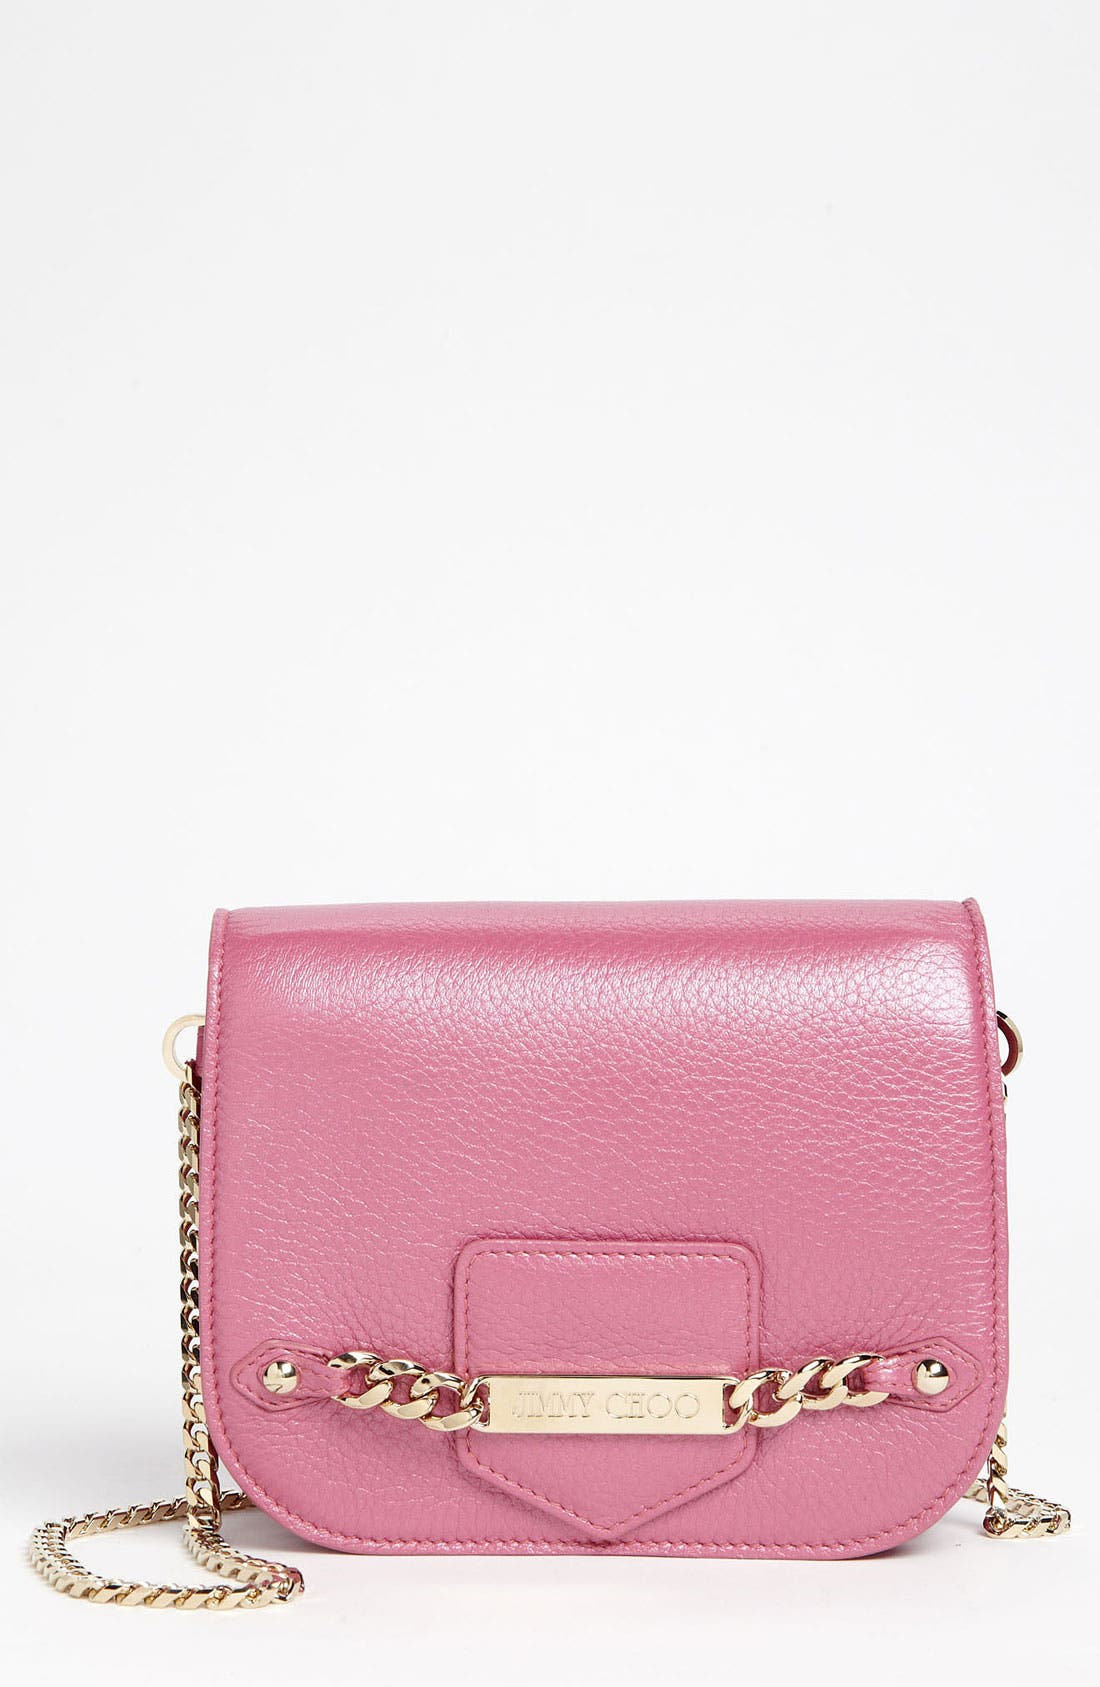 Main Image - Jimmy Choo 'Shadow' Pearlized Leather Crossbody Bag